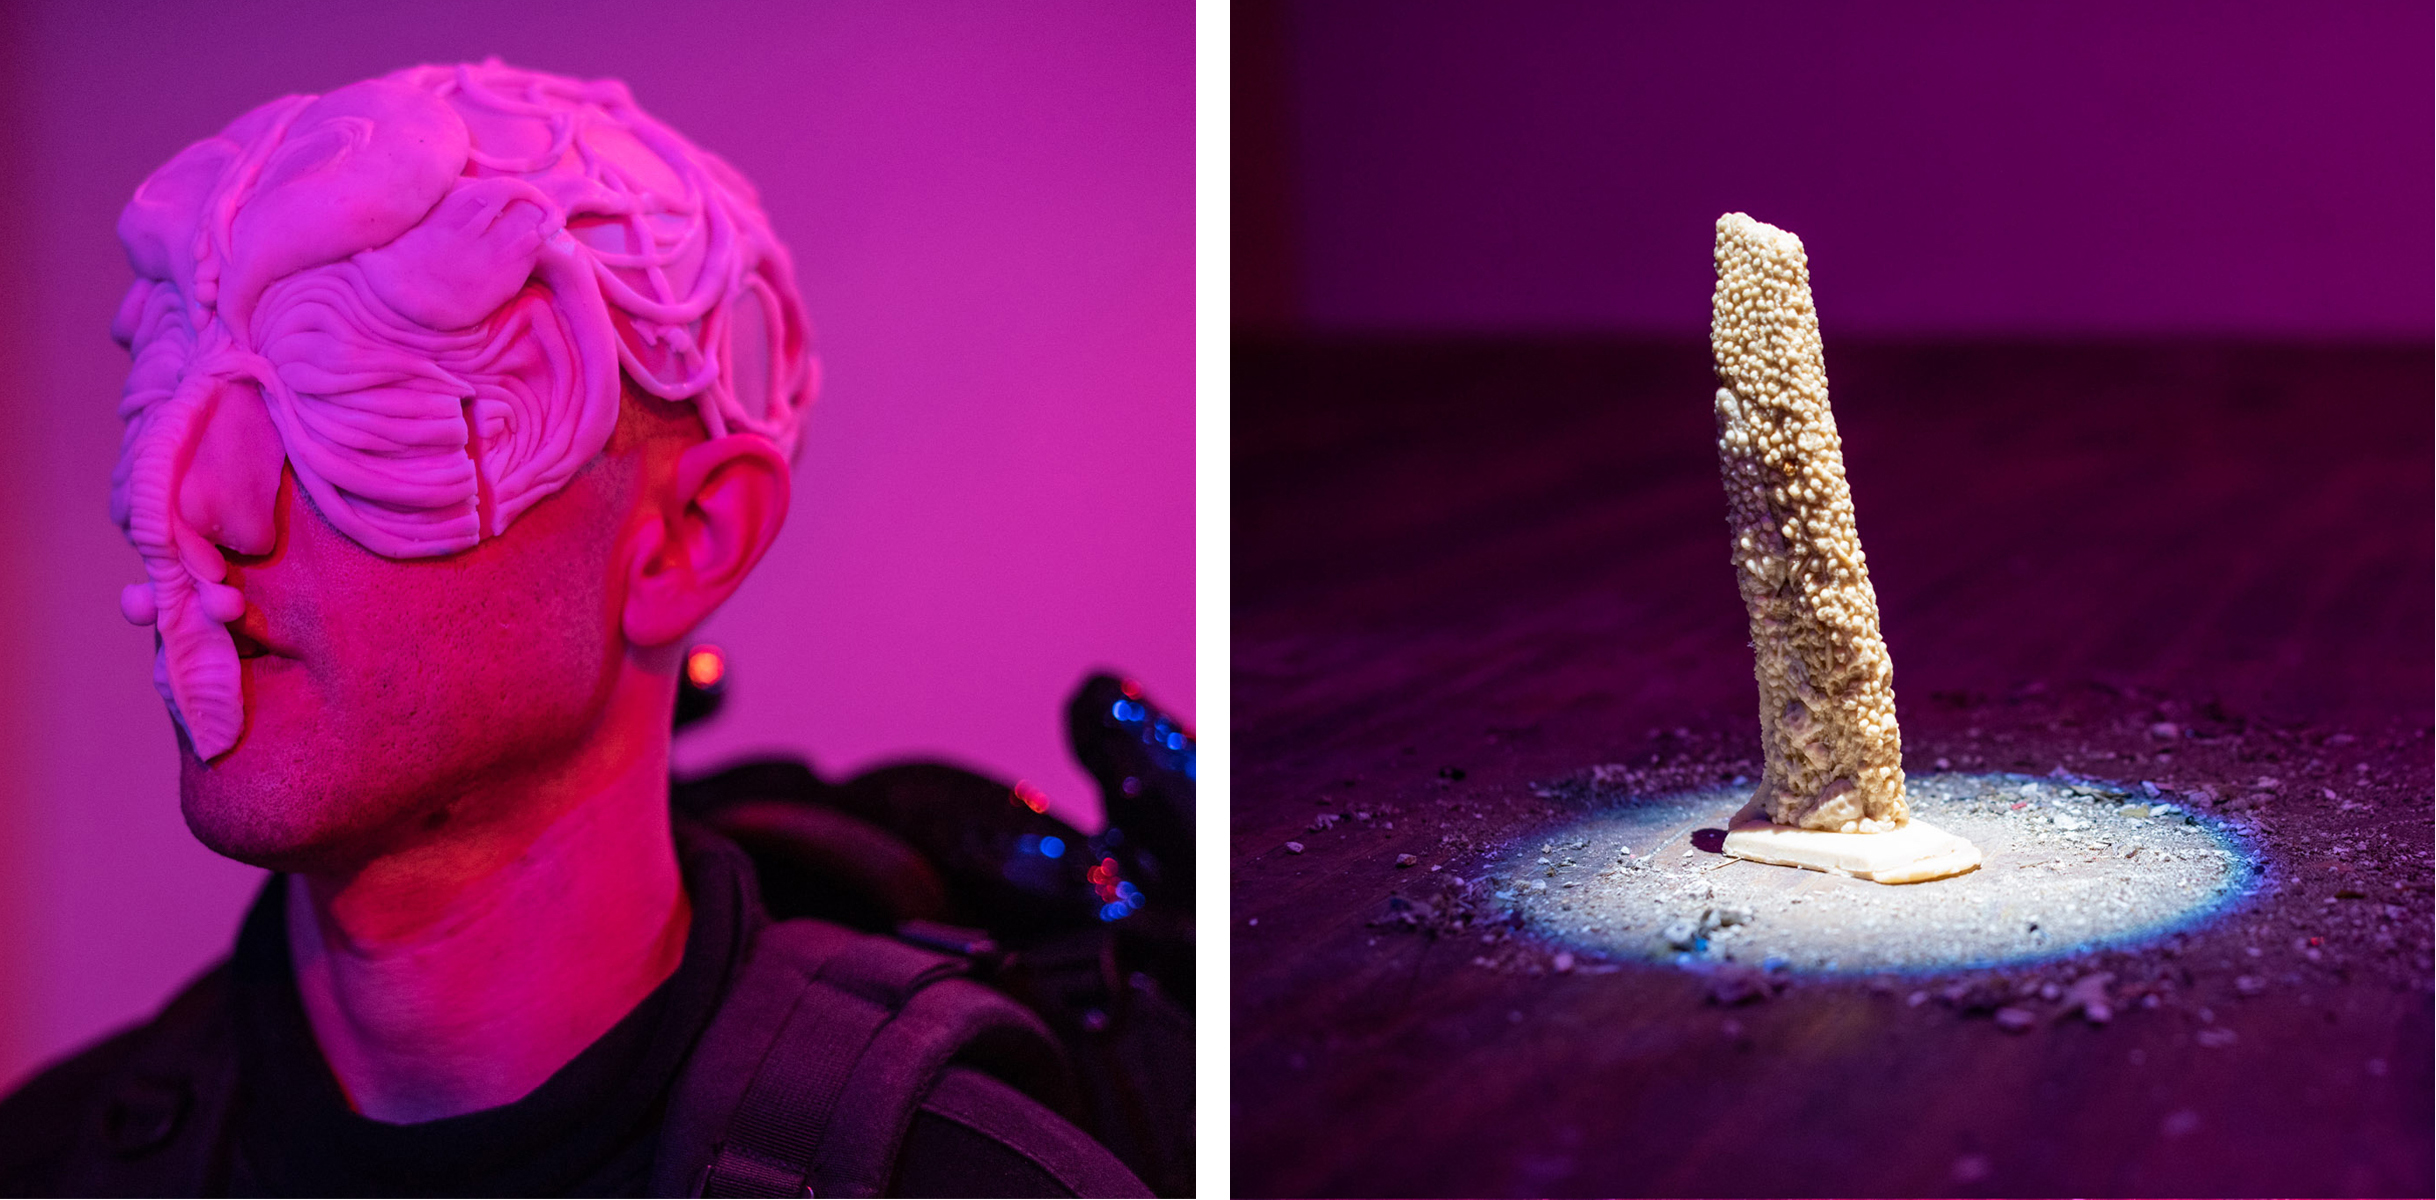 (Left) The silicone headpiece documented pre-performance, before the black mantle of the creature's head was affixed over it. (Right)  ALL THAT REMAINS , a sculpture made from over one thousand tiny skulls cast in potassium nitrate and sugar. All of the dirt from the floor of the Jace Space was swept to its base where it was spotlit by a framing projector from above.